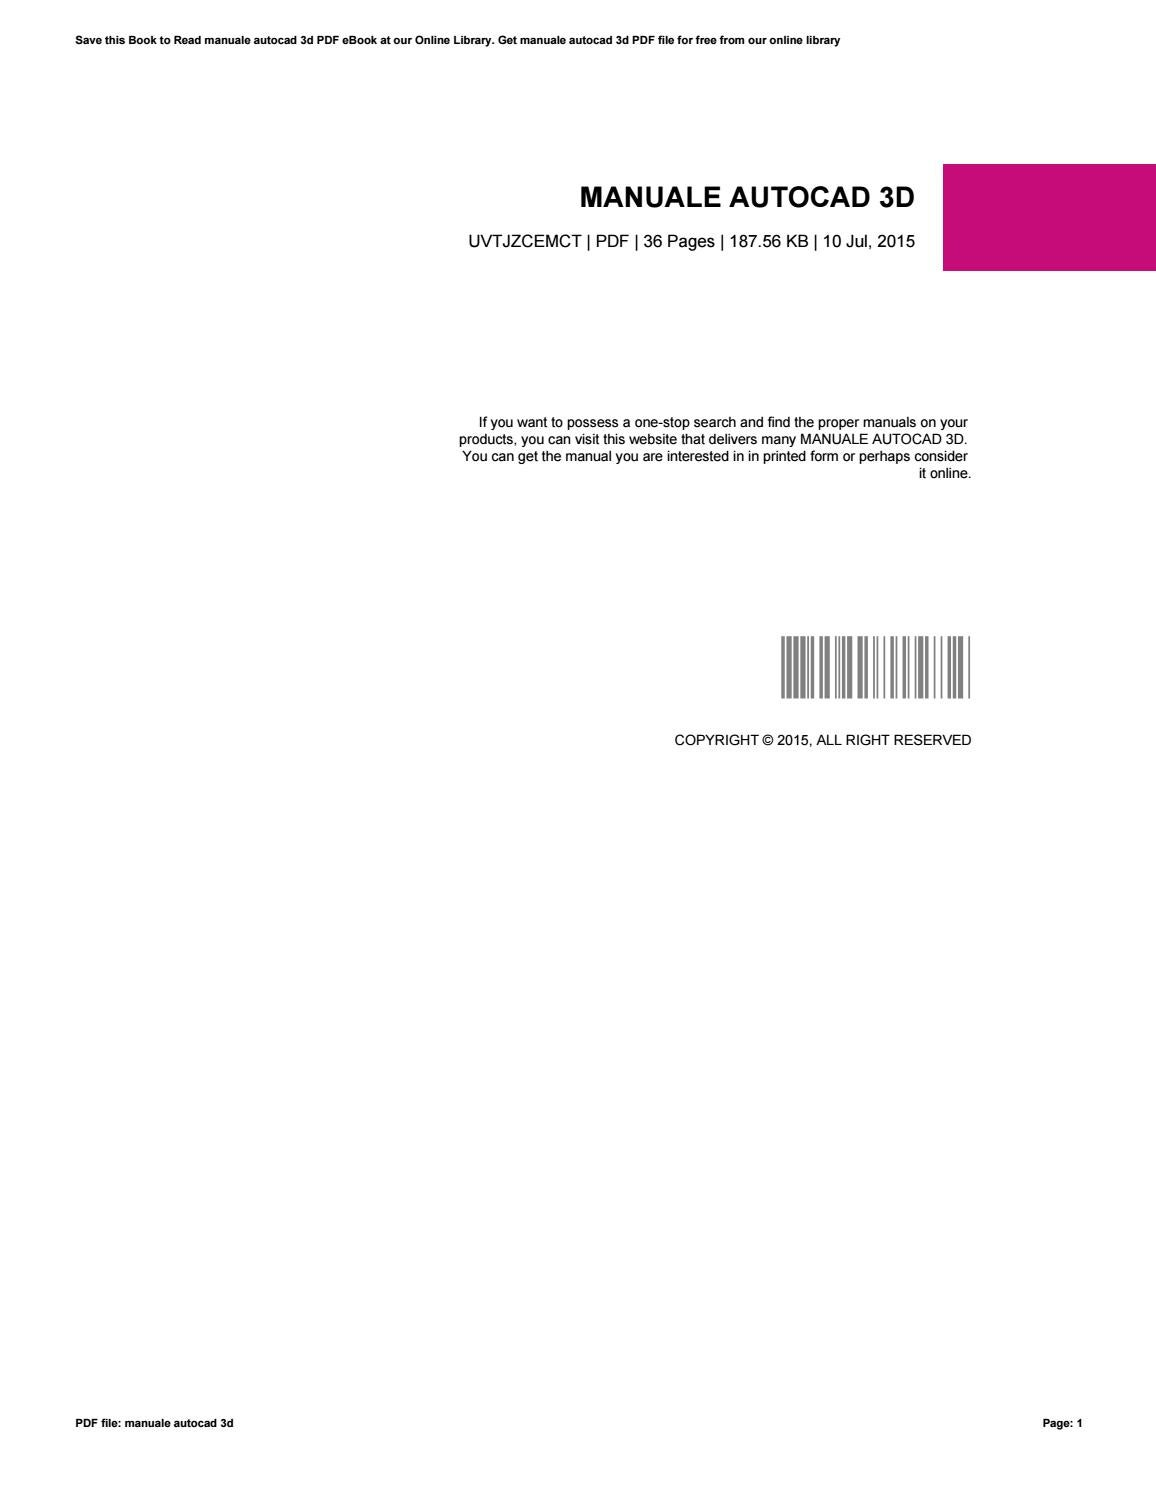 Autocad Civil 3d 2012 Manual Pdf